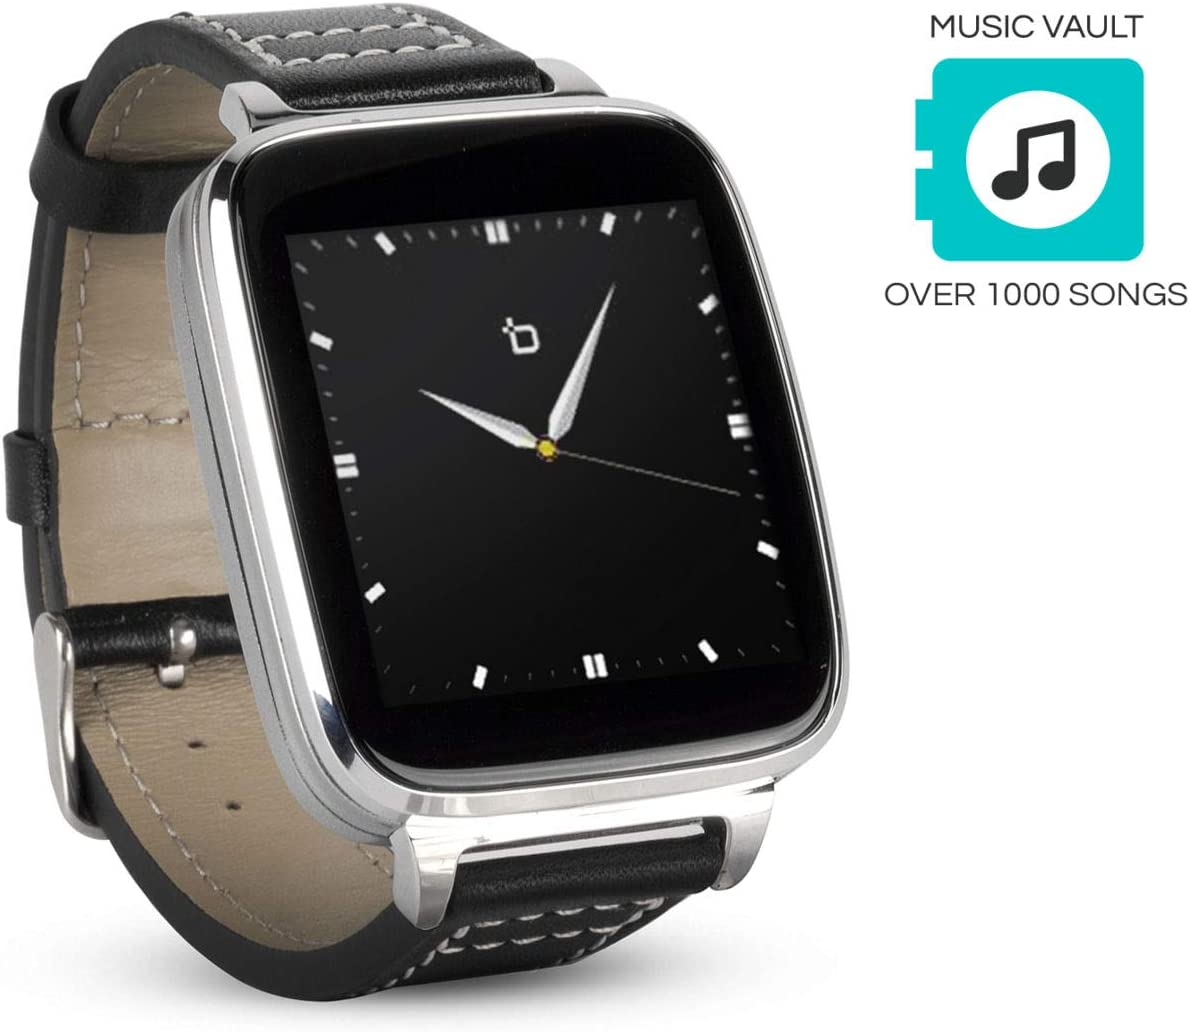 Beantech Smart Watch for Apple/Android Phones. 8GB of Music Storage. Silver with Leather Strap.